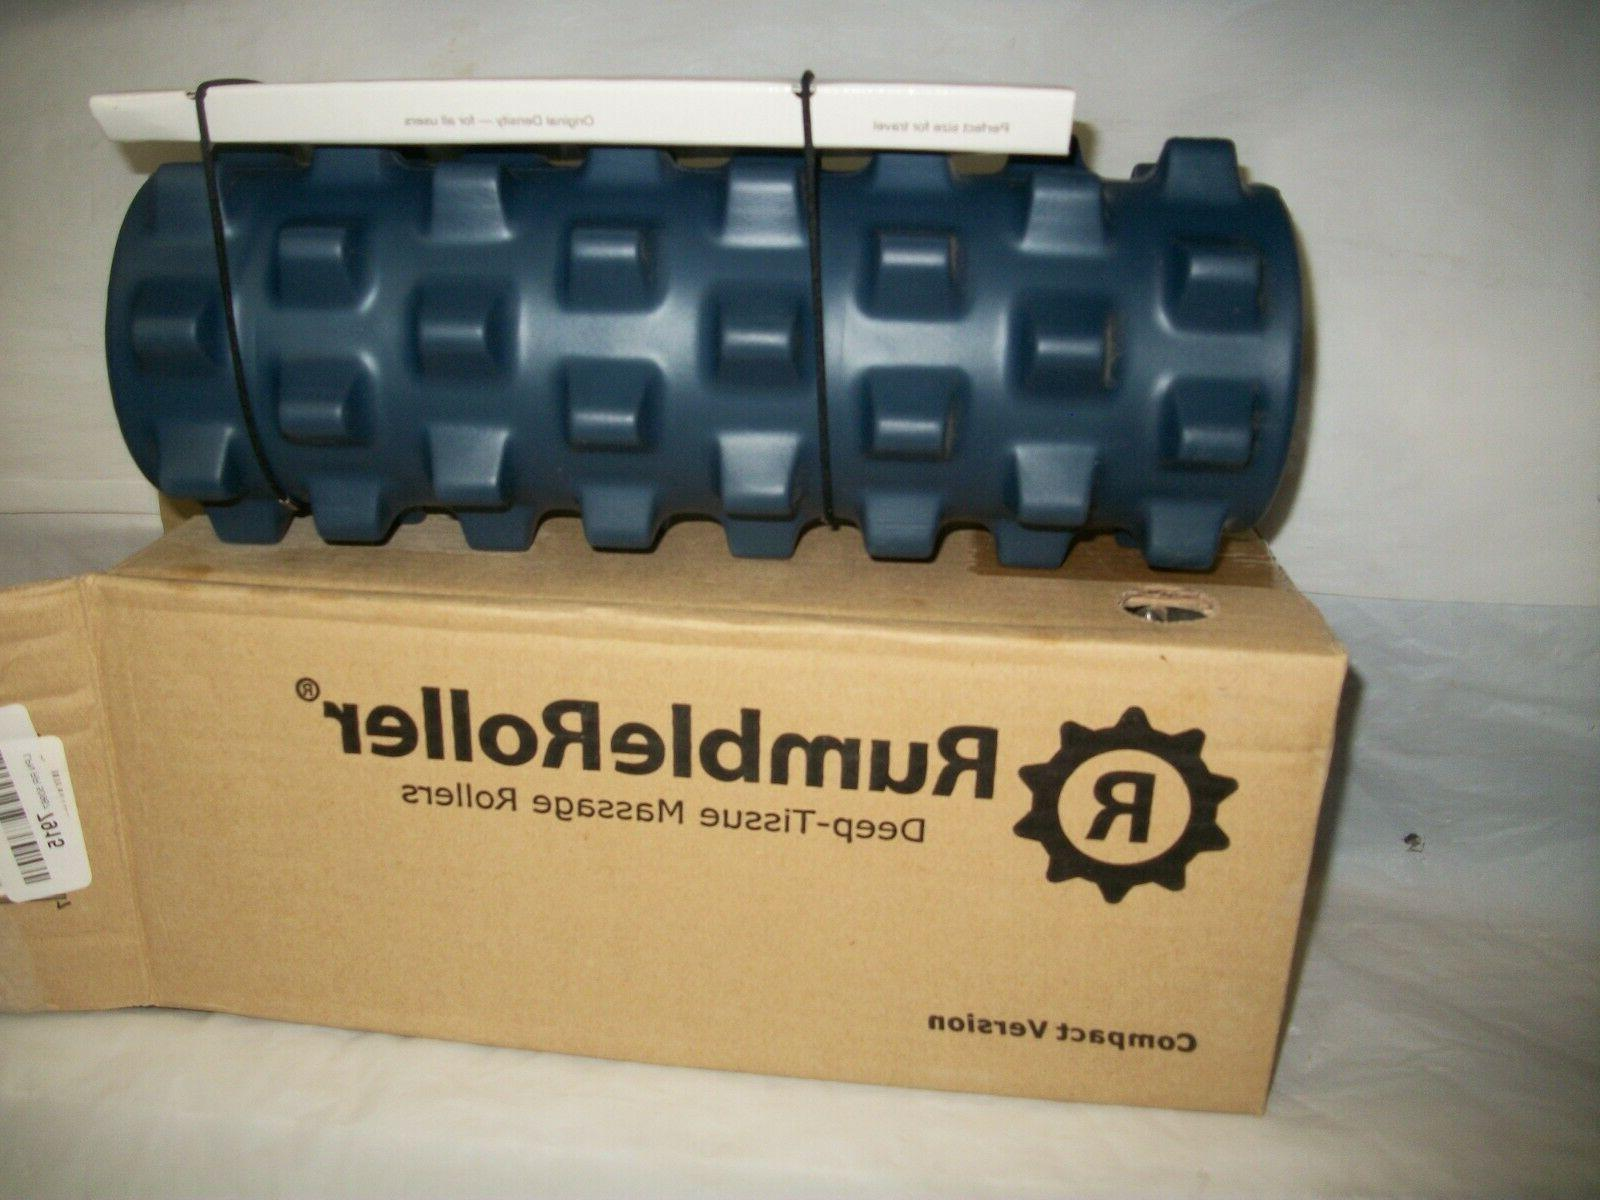 rumble roller compact extra firm deep tissue